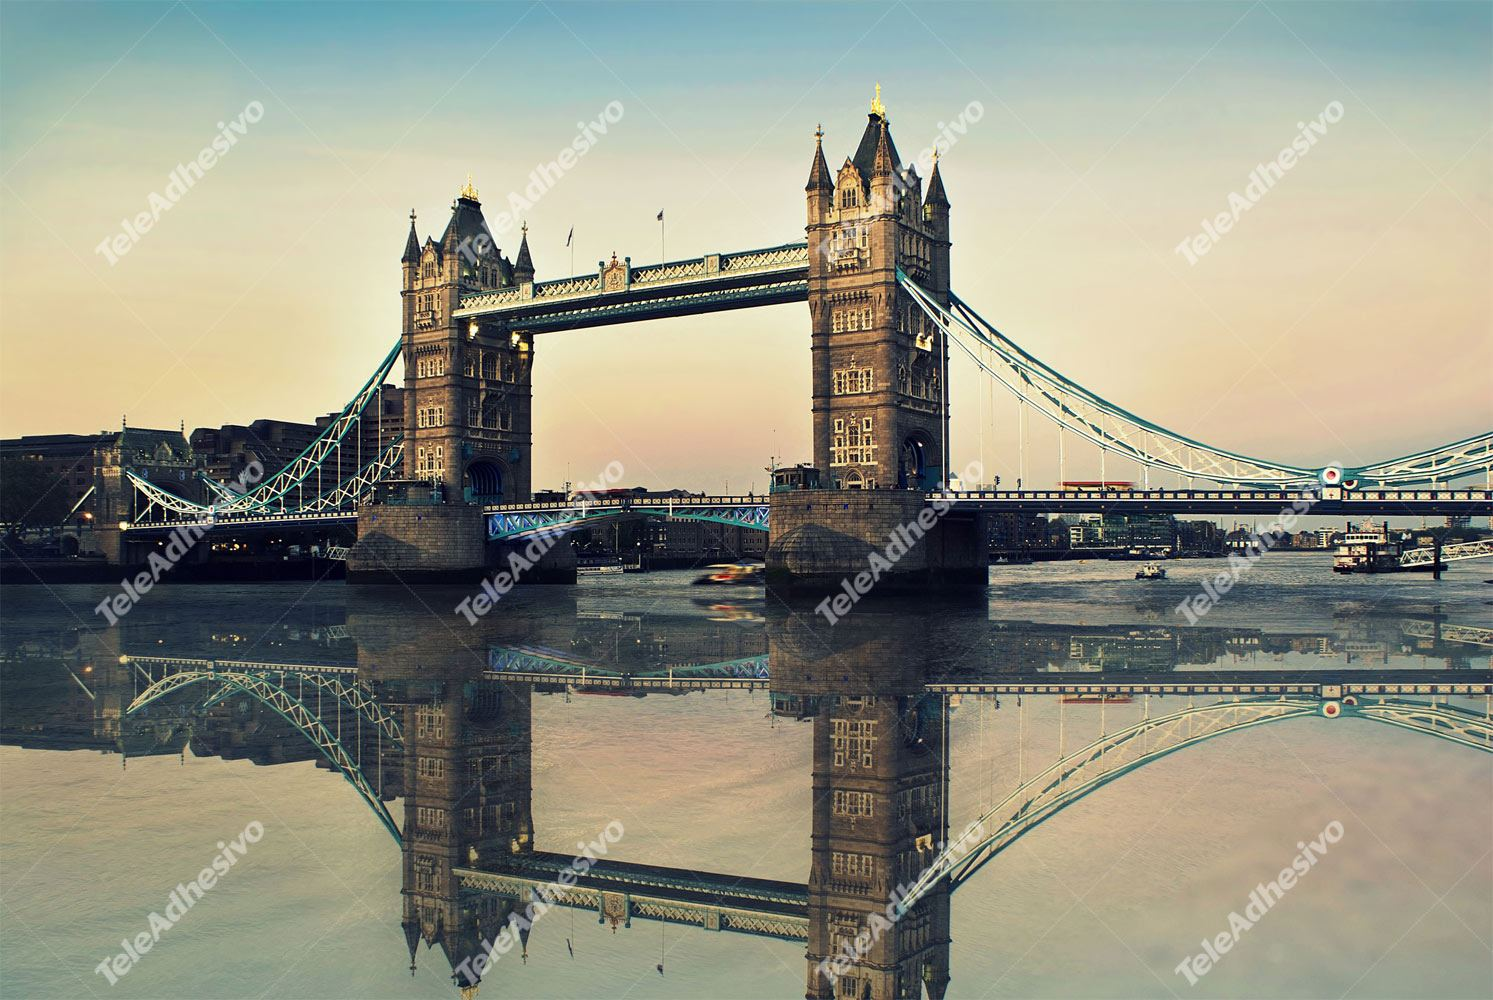 Fototapeten: London Bridge